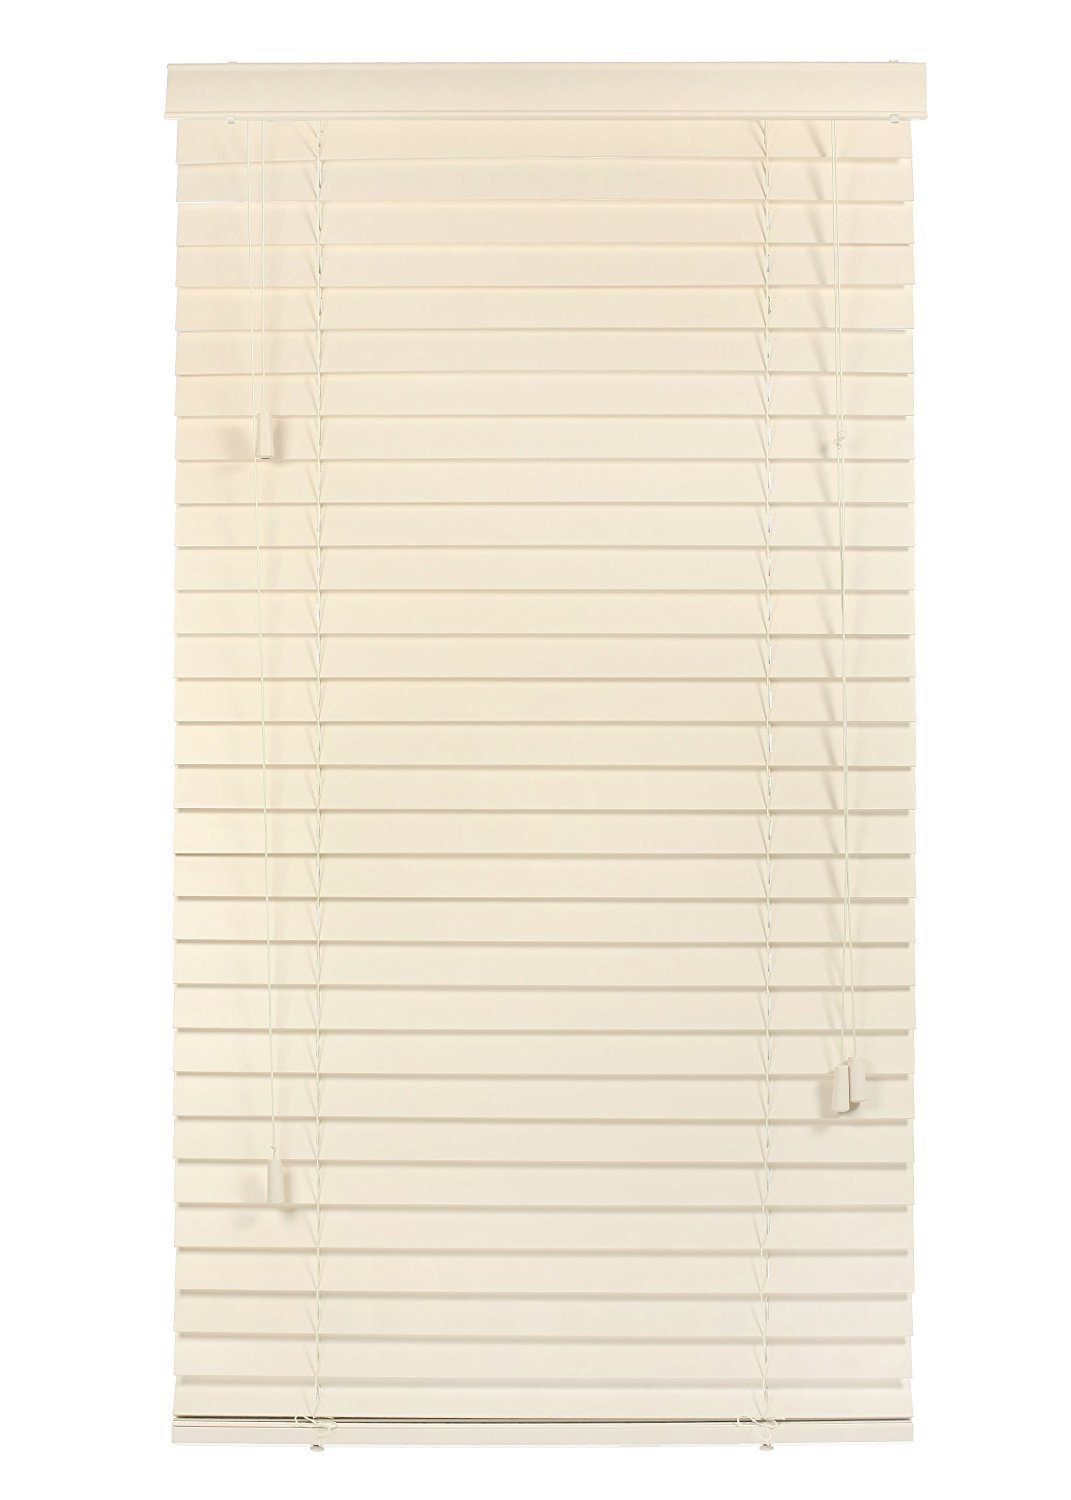 "Luxr Blinds Custom-Made 100% Real Wood 2"" Slats Venetian Blinds: Easy-Mount Horizontal Window Treatment with Magnetic Valences - 46.5""X64"" Length Butter Cream (Off White)"